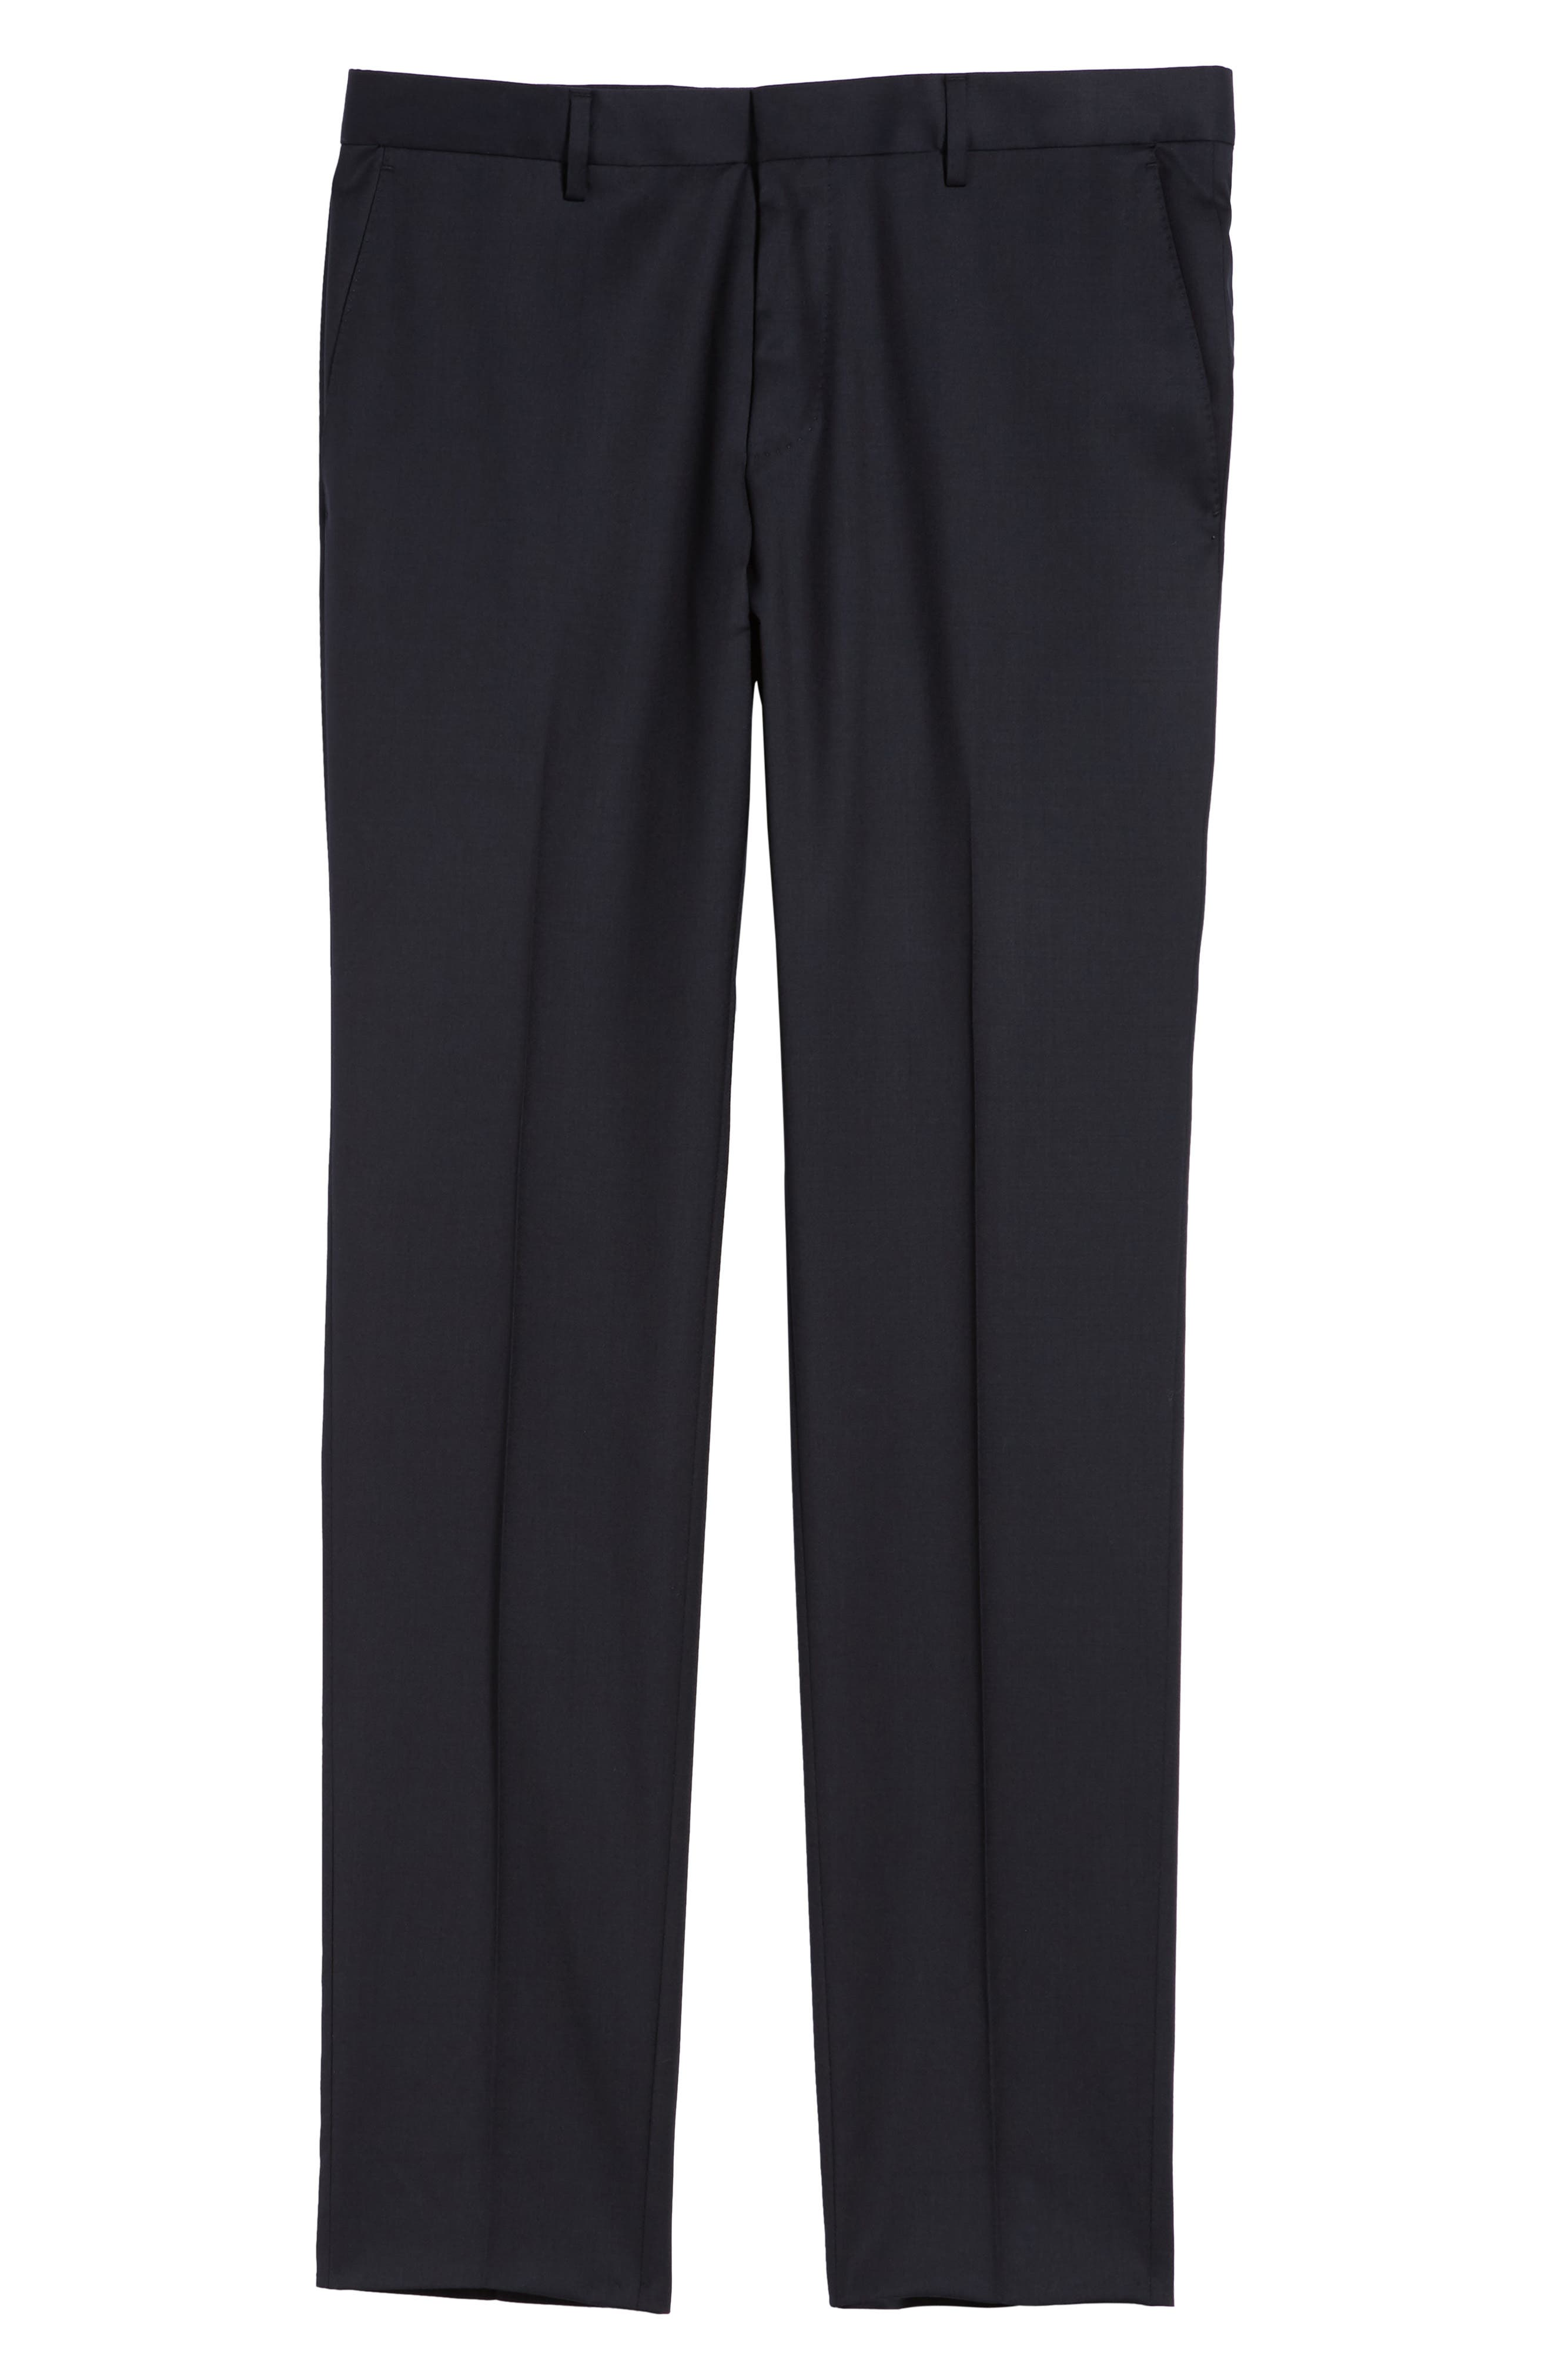 Gibson CYL Flat Front Solid Wool Trousers,                             Alternate thumbnail 6, color,                             Dark Blue